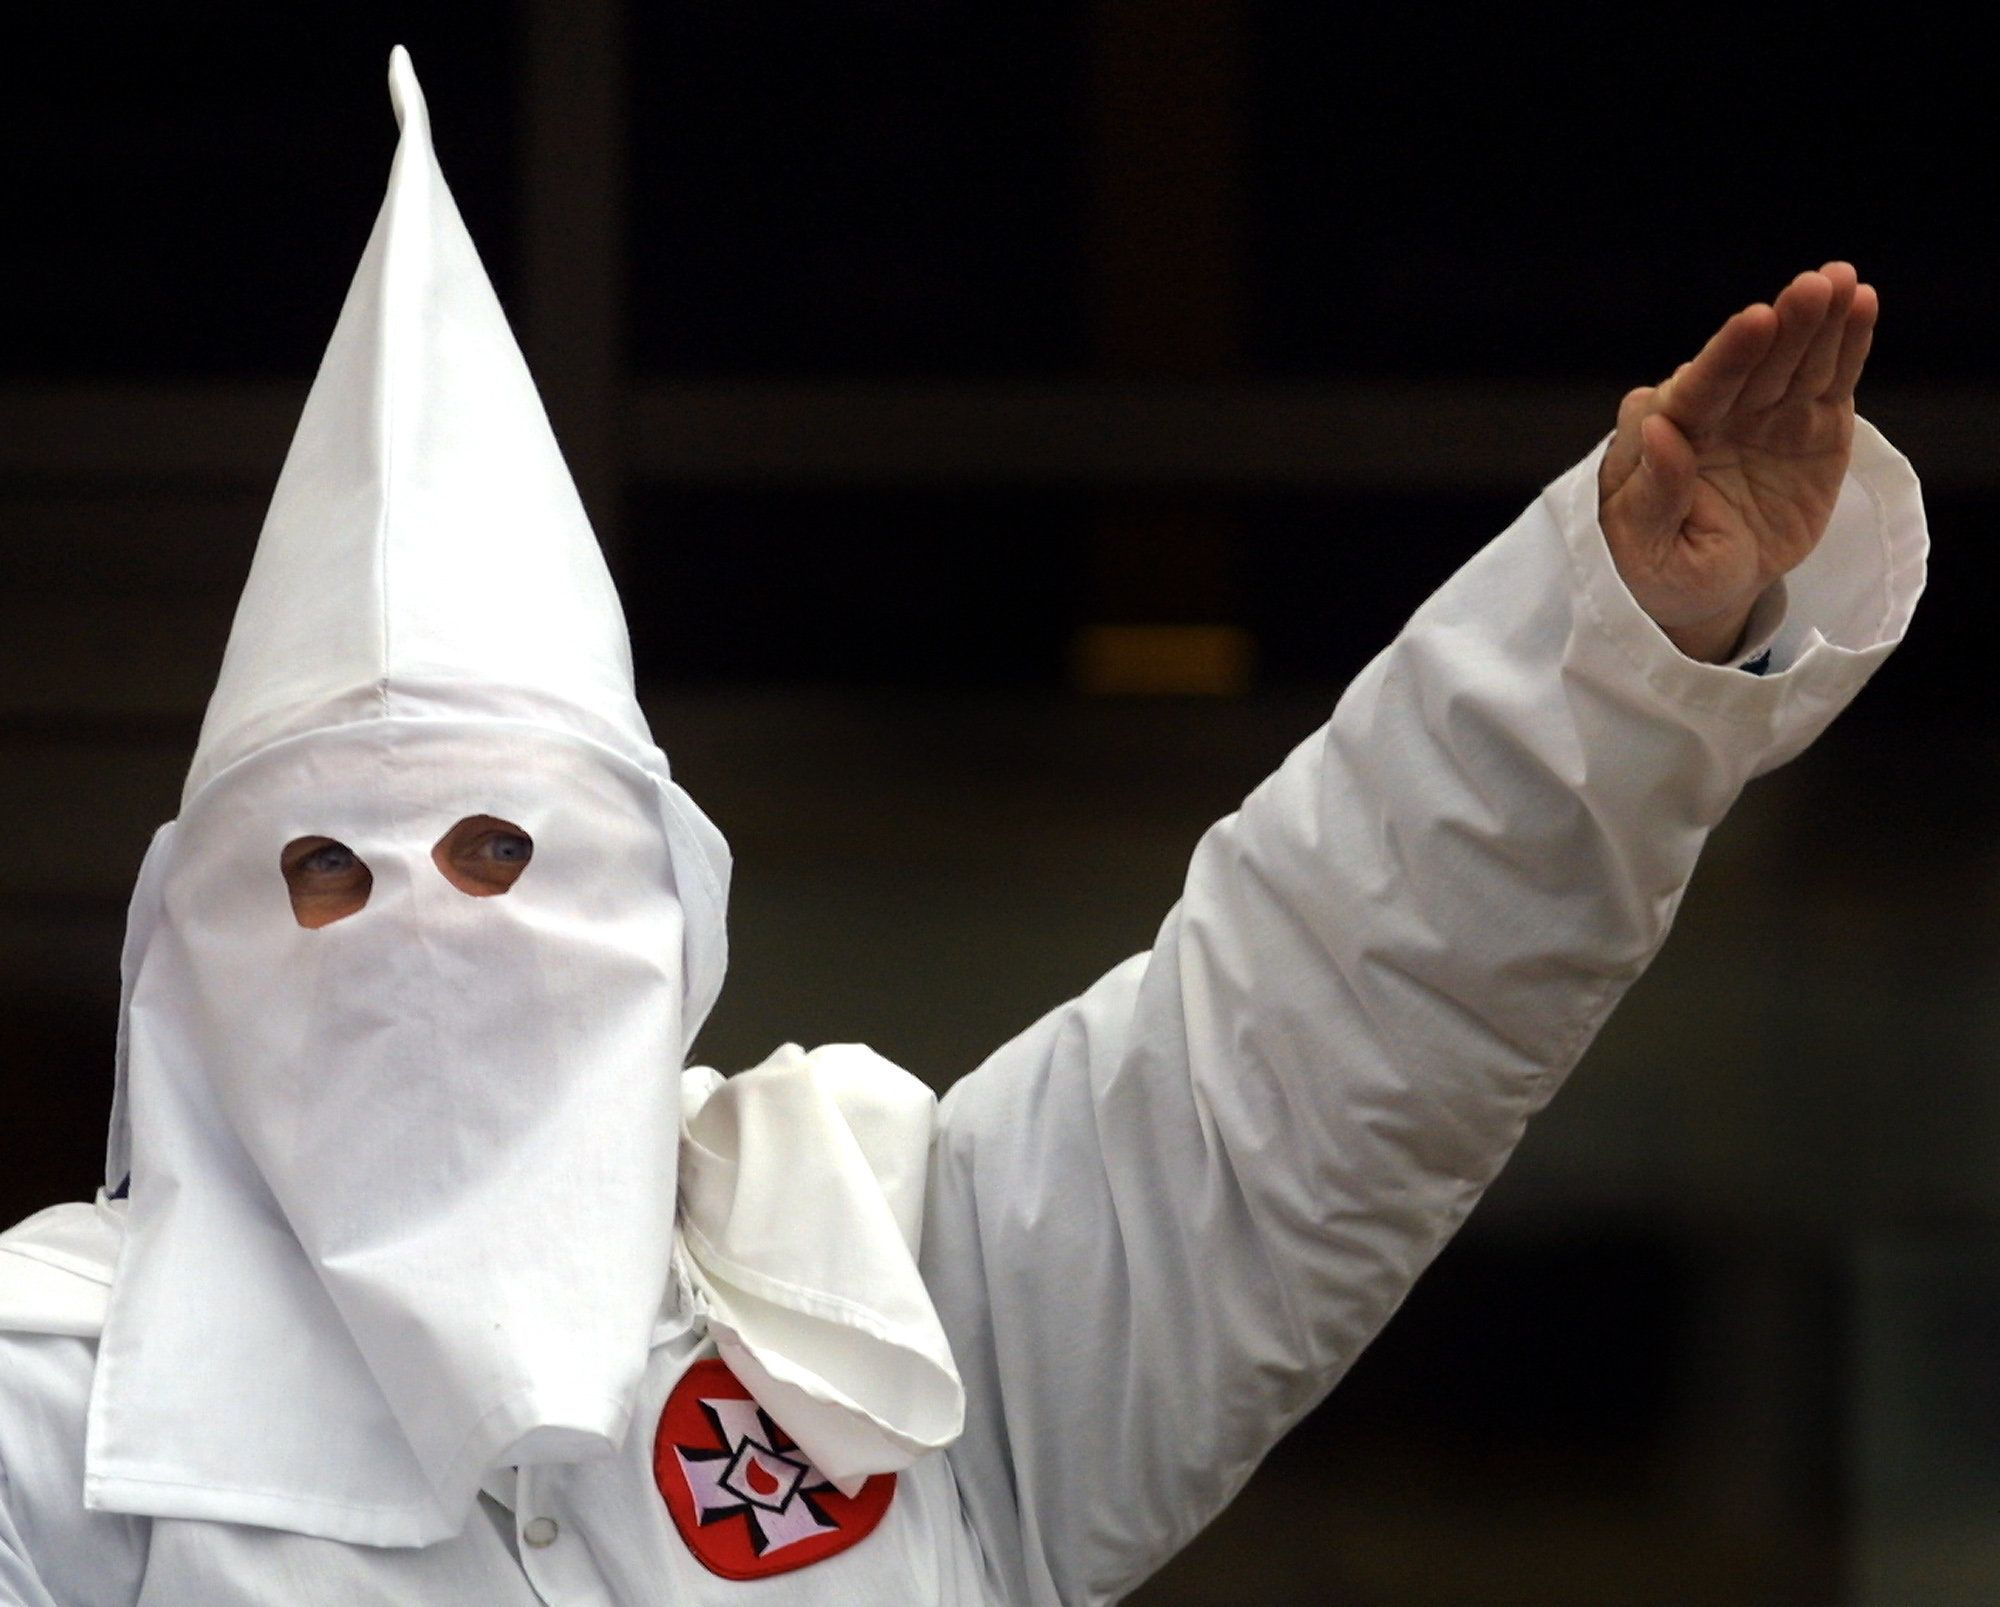 The Ku Klux Klan is desperate for a Donald Trump presidency.